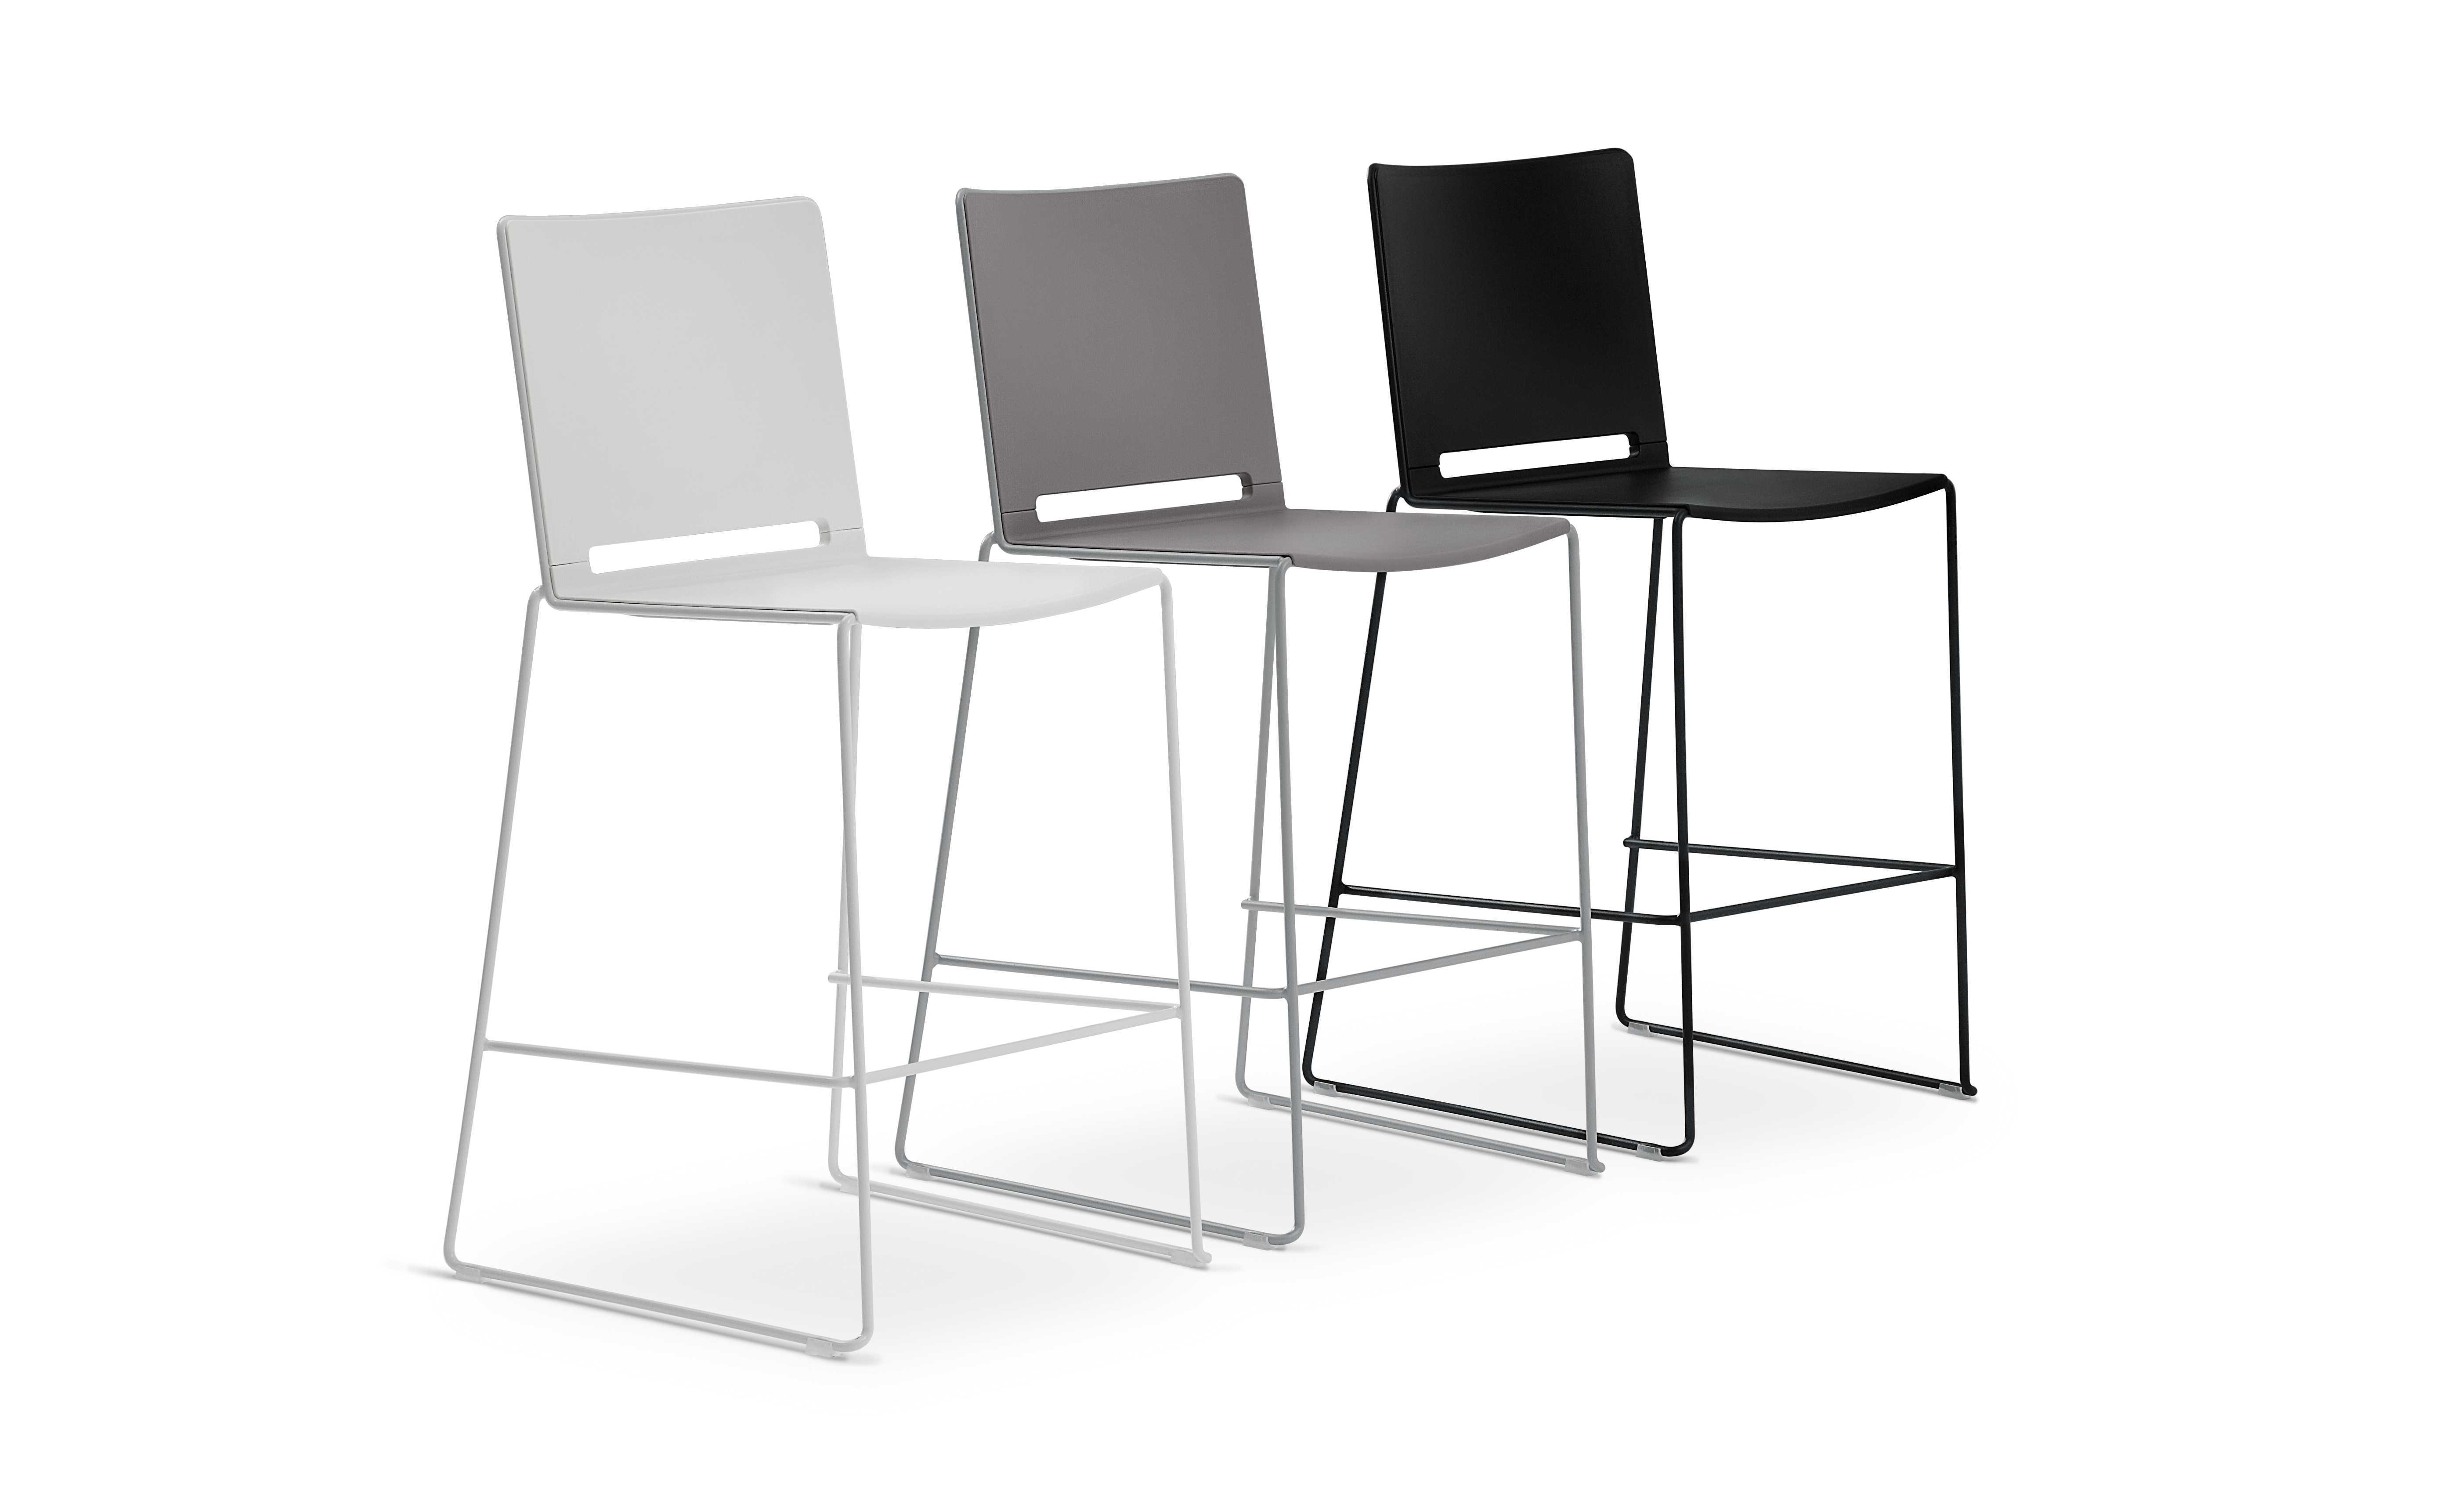 Lafil plastic chair chairs seating products for Sedie design 3d